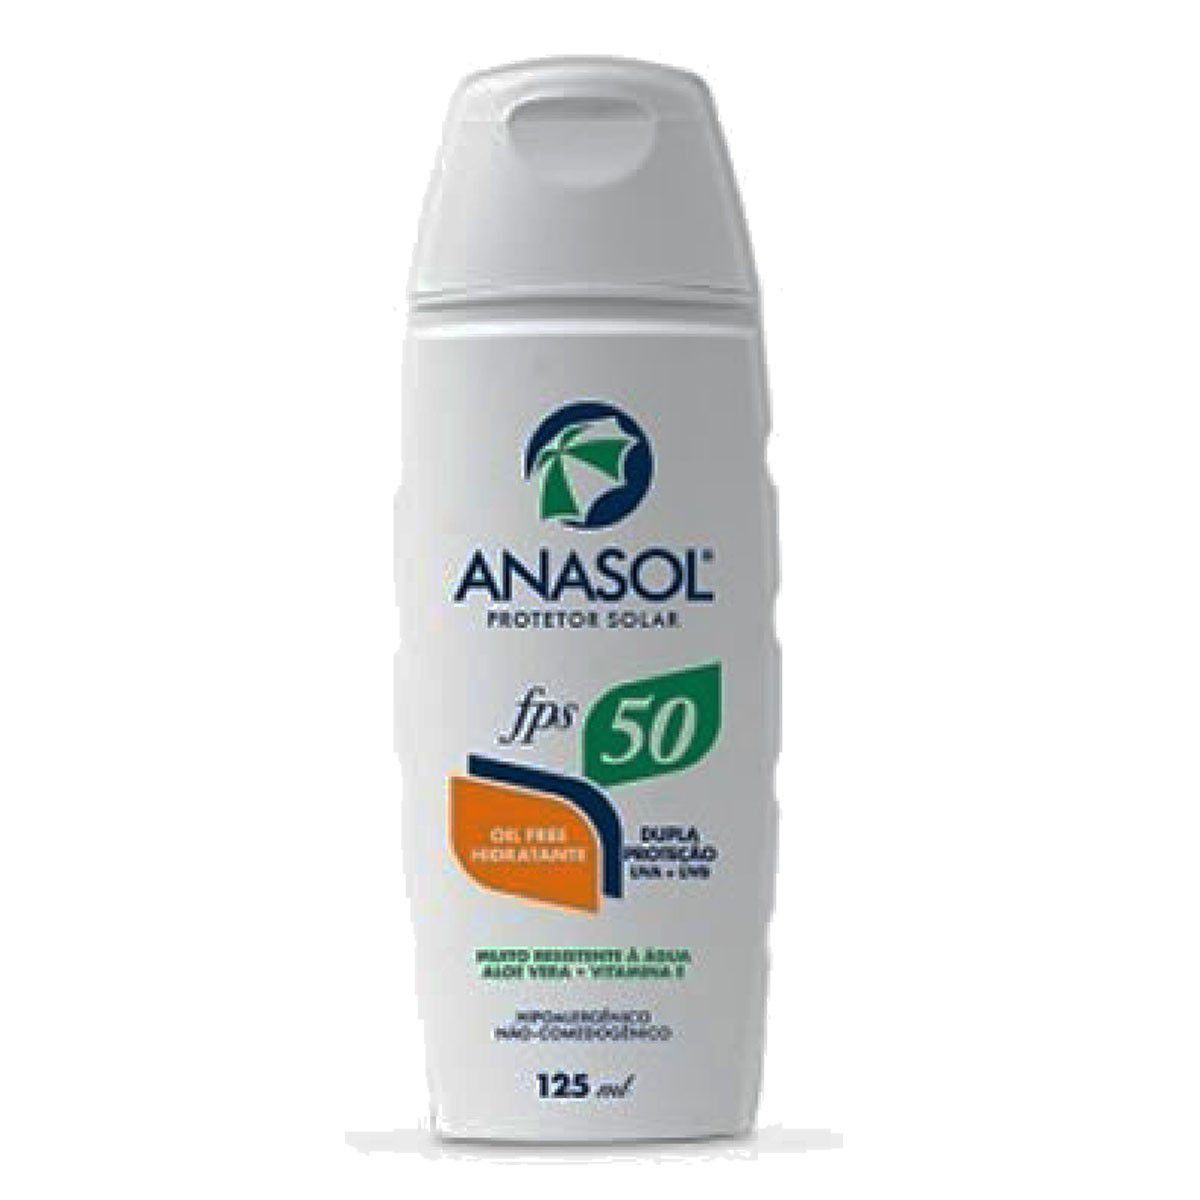 Kit 4 Und Protetor Solar Anasol Fps 50 Oil Free Hipoalergênico 125 ml